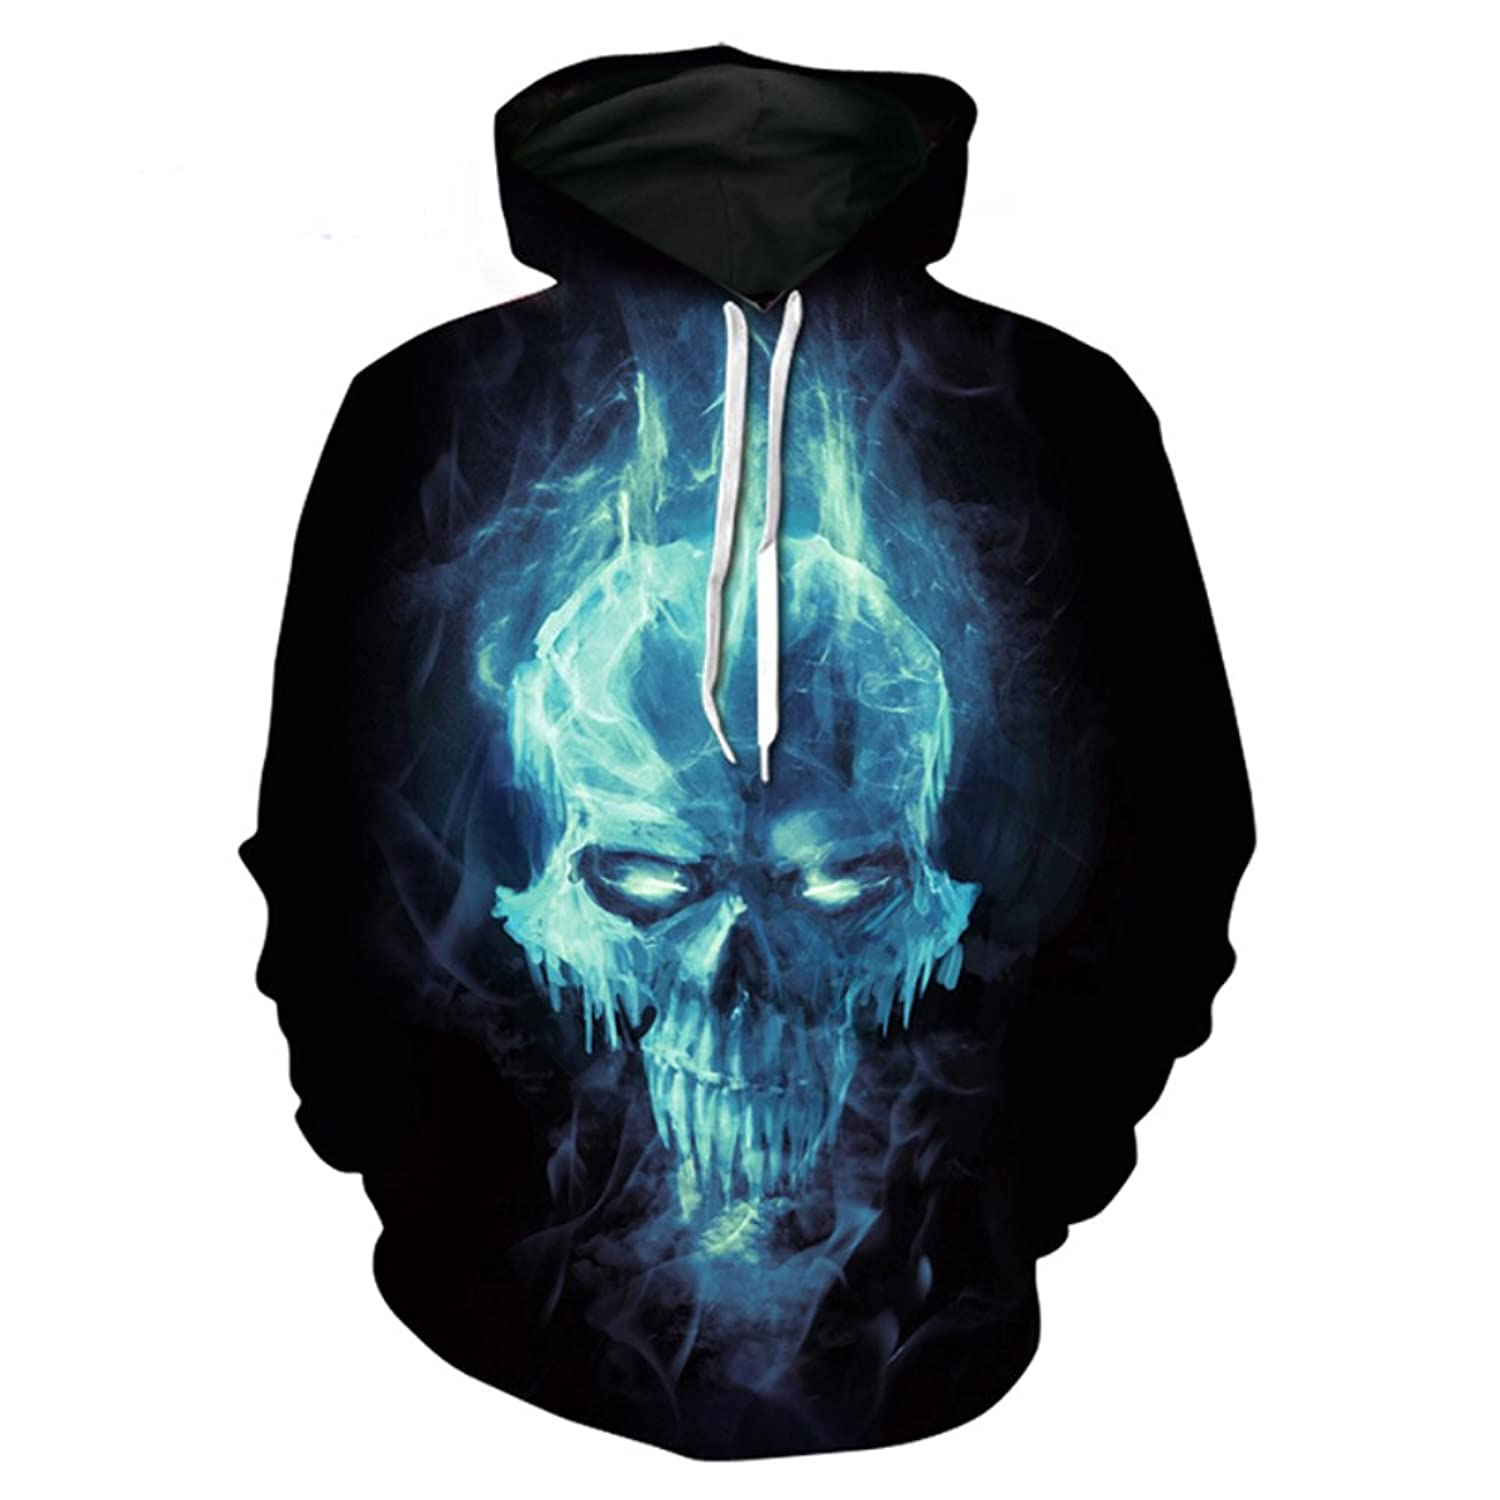 679f793cb0e8 Style: hoody, unisex hooded sweatshirts, kangaroo pocket, long sleeves,funny  design. Fashion 3D hoodie, suitable for men and women old and young.